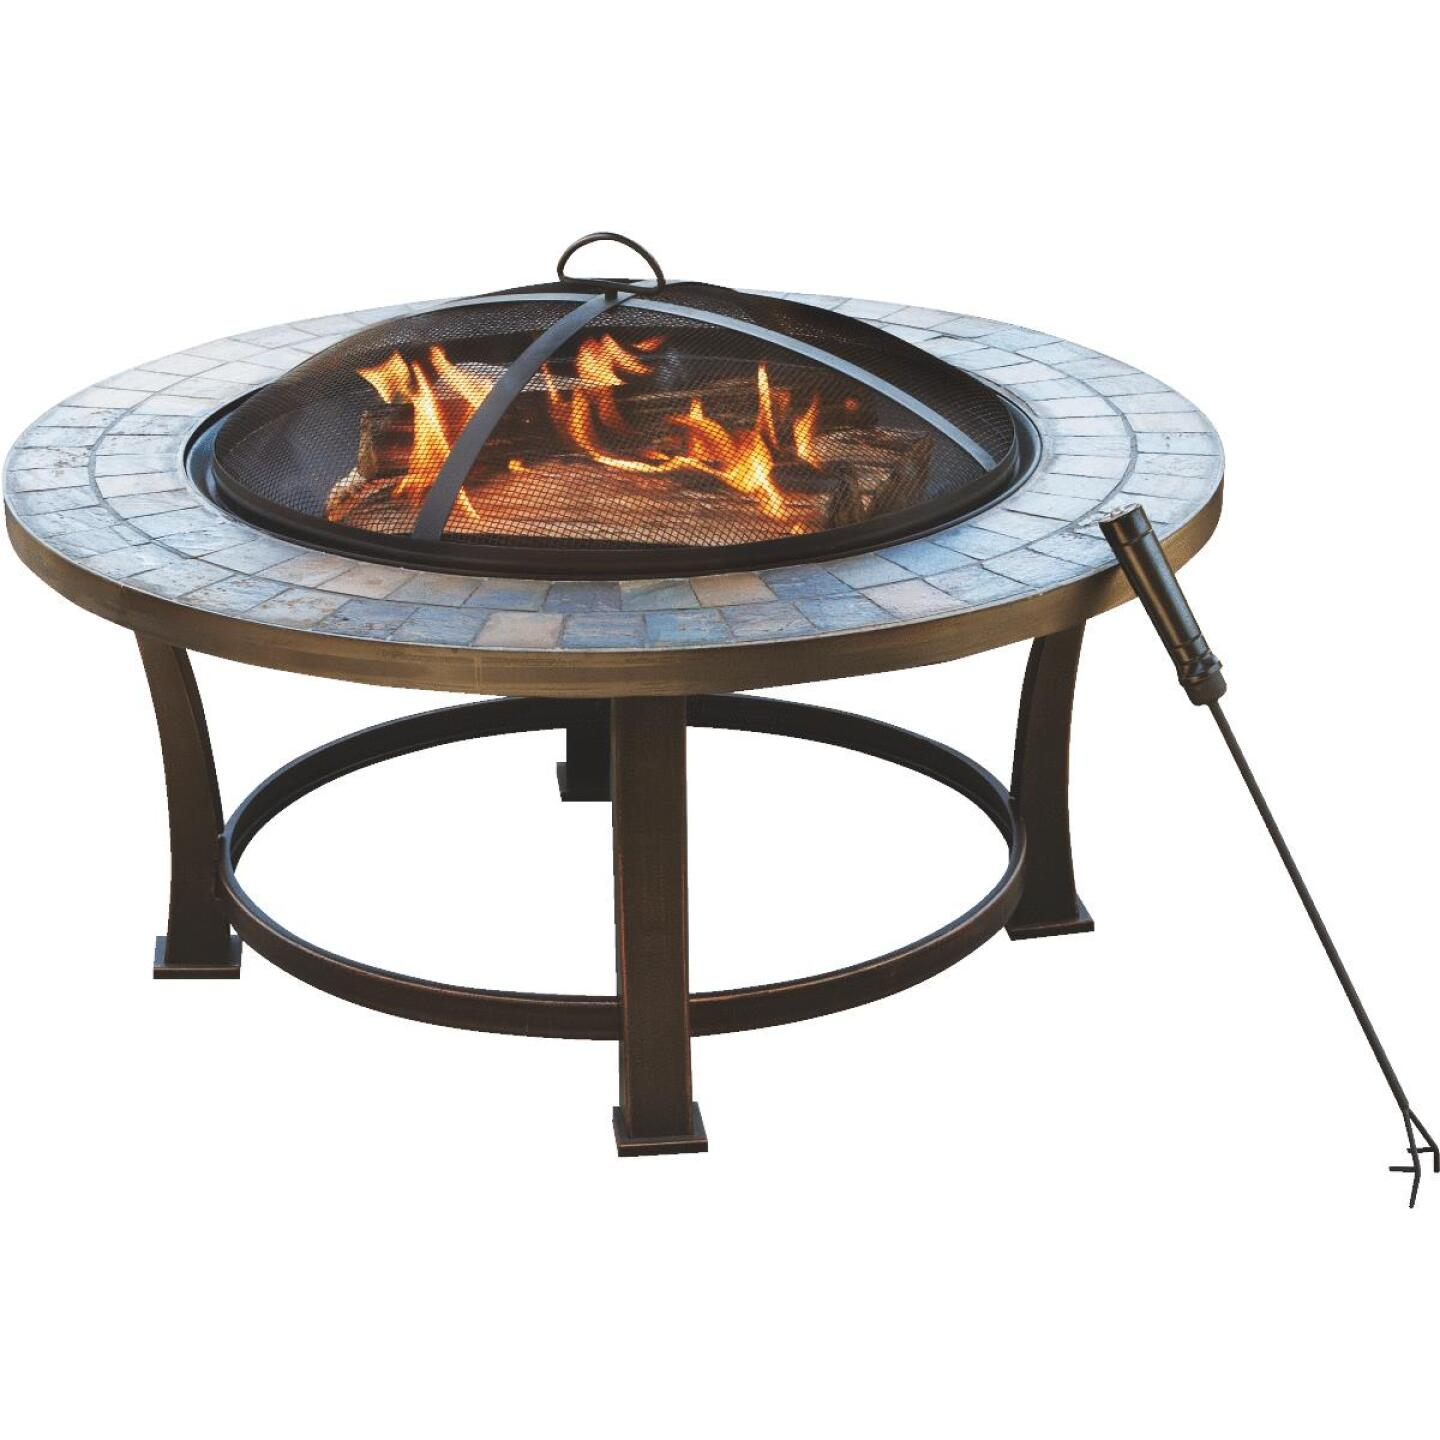 Outdoor Expressions 34 in. Antique Bronze Round Steel Fire Pit Image 1